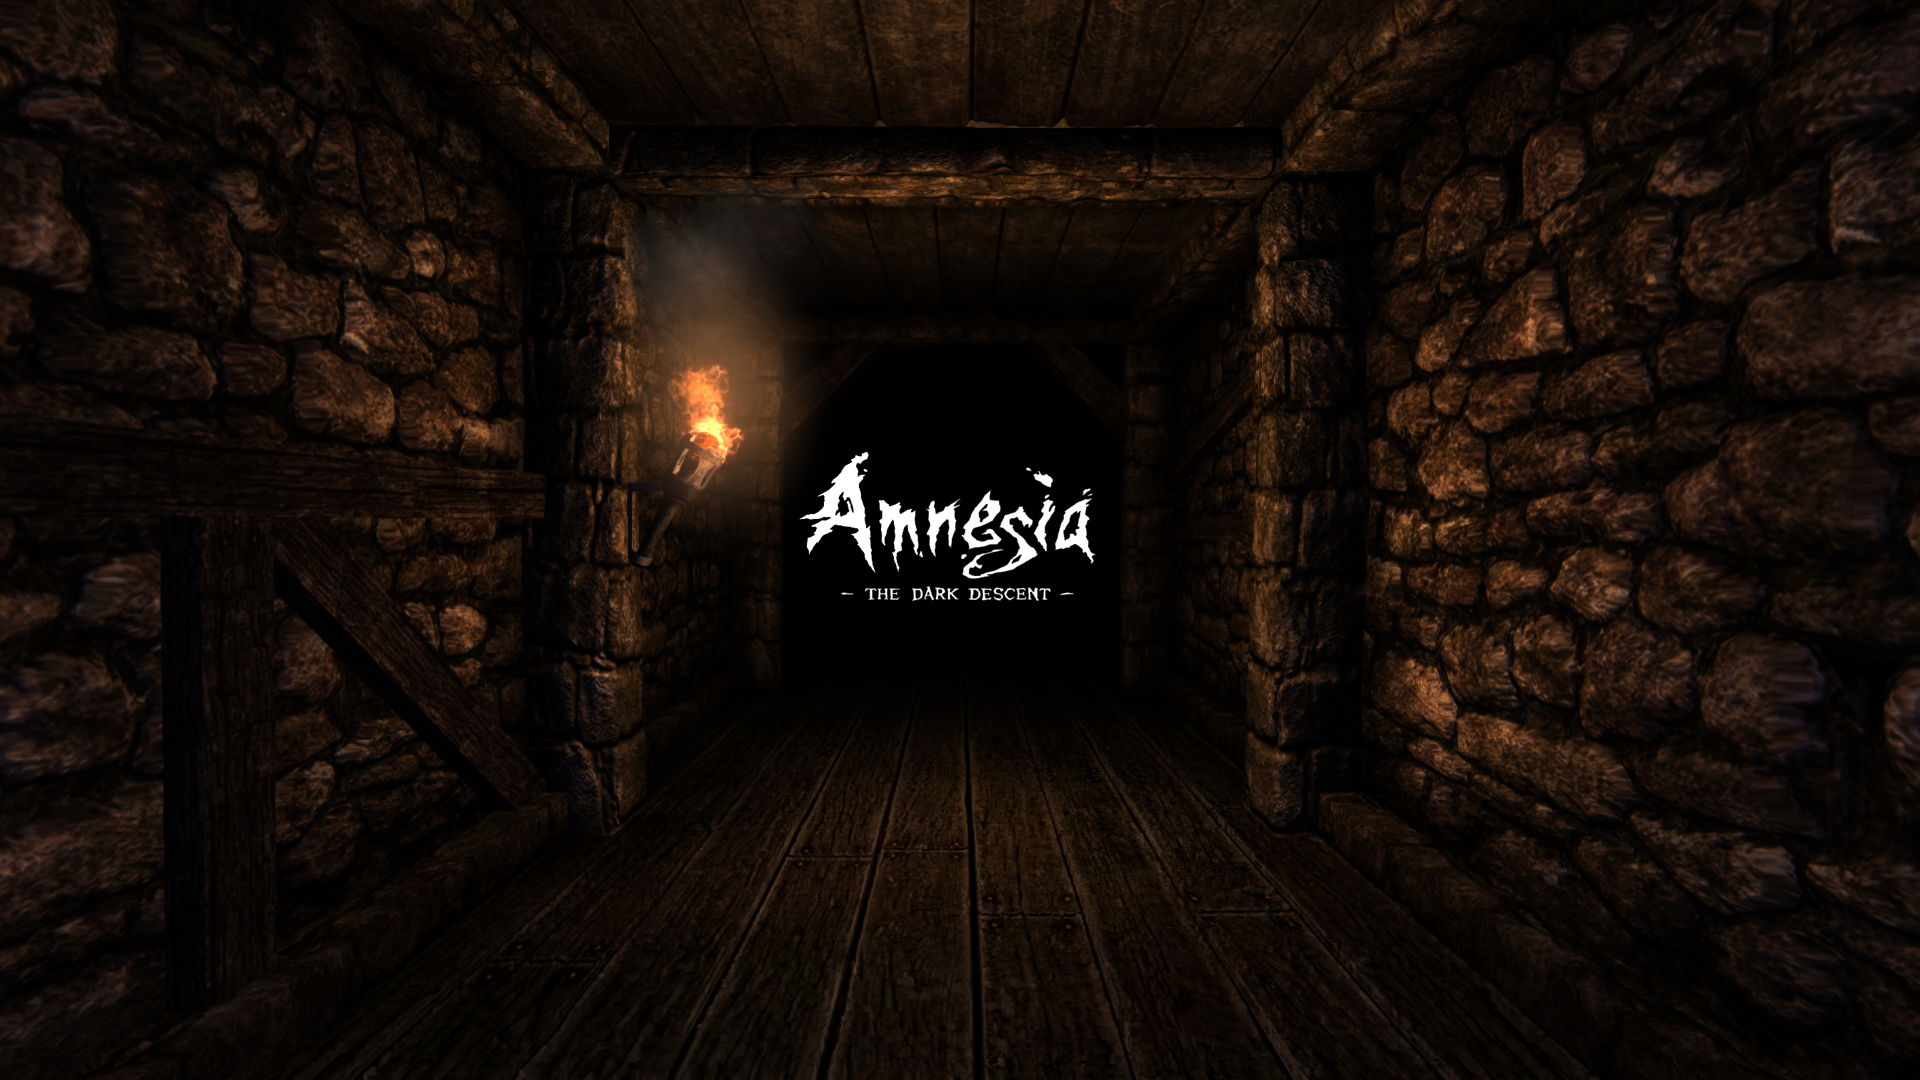 Amnesia The Dark Descent HD Wallpaper Background Image 1920x1080